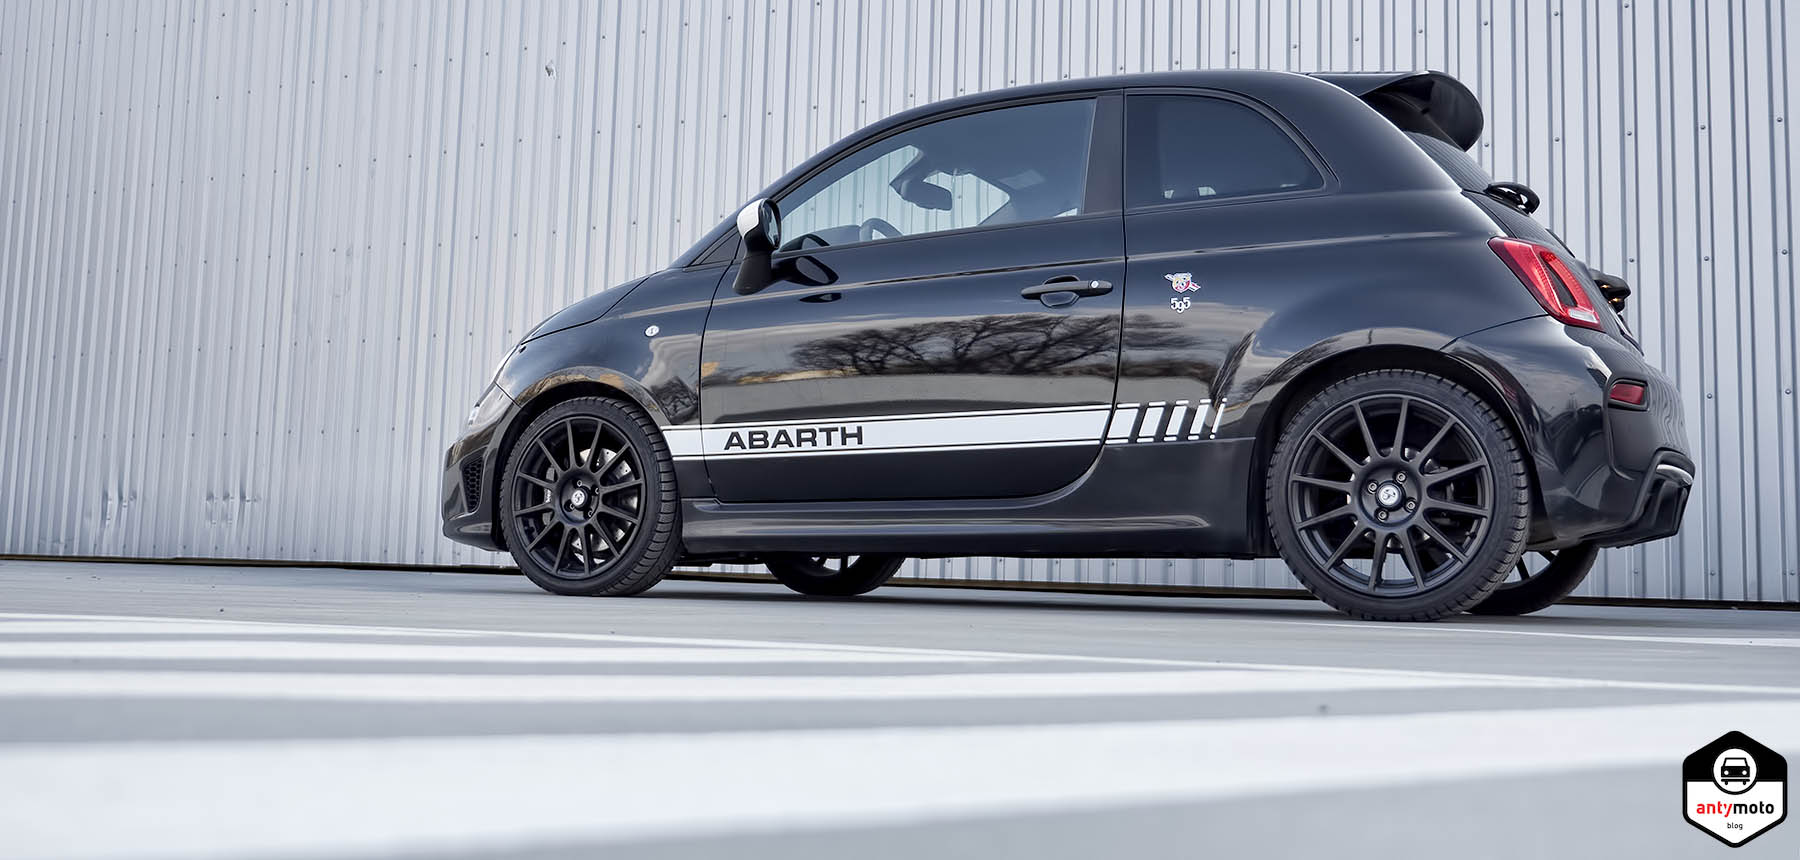 w ciek y skorpion test abarth 595 competizione. Black Bedroom Furniture Sets. Home Design Ideas